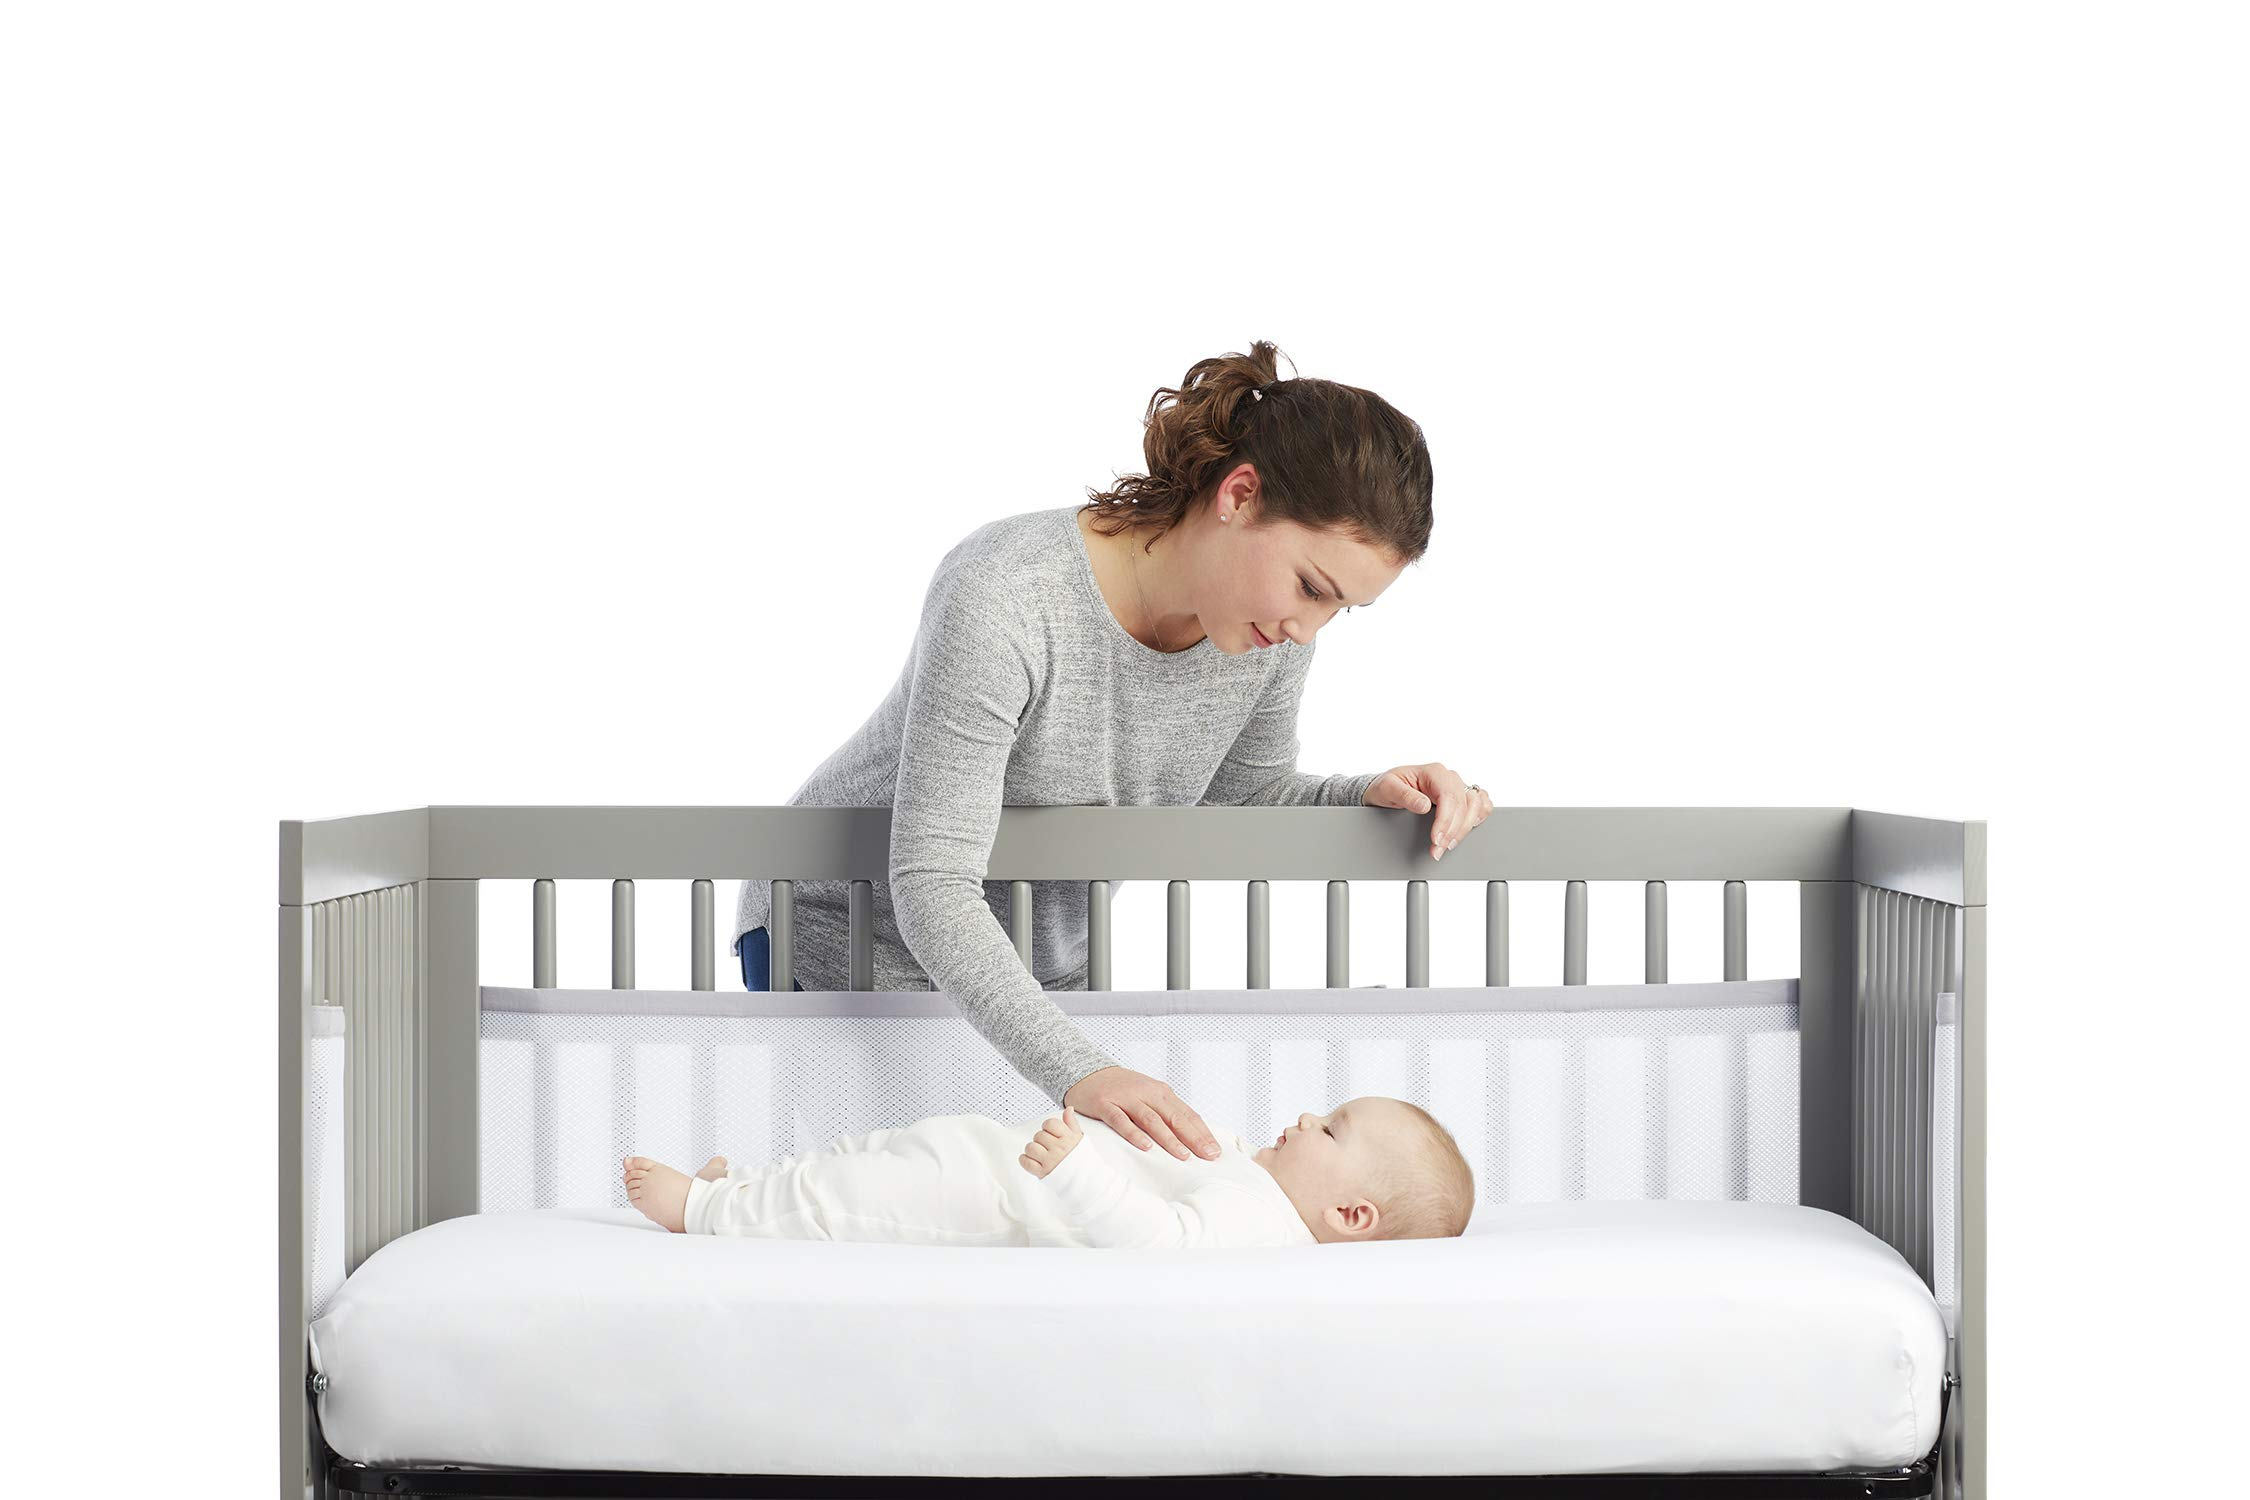 BreathableBaby 2 Sided Cot Mesh Liner (White Mist) BreathableBaby Suitable for solid end slatted cots Reduces the risk of suffocation with its breathable mesh material Design is soft and padded keeping little limbs safely inside 1